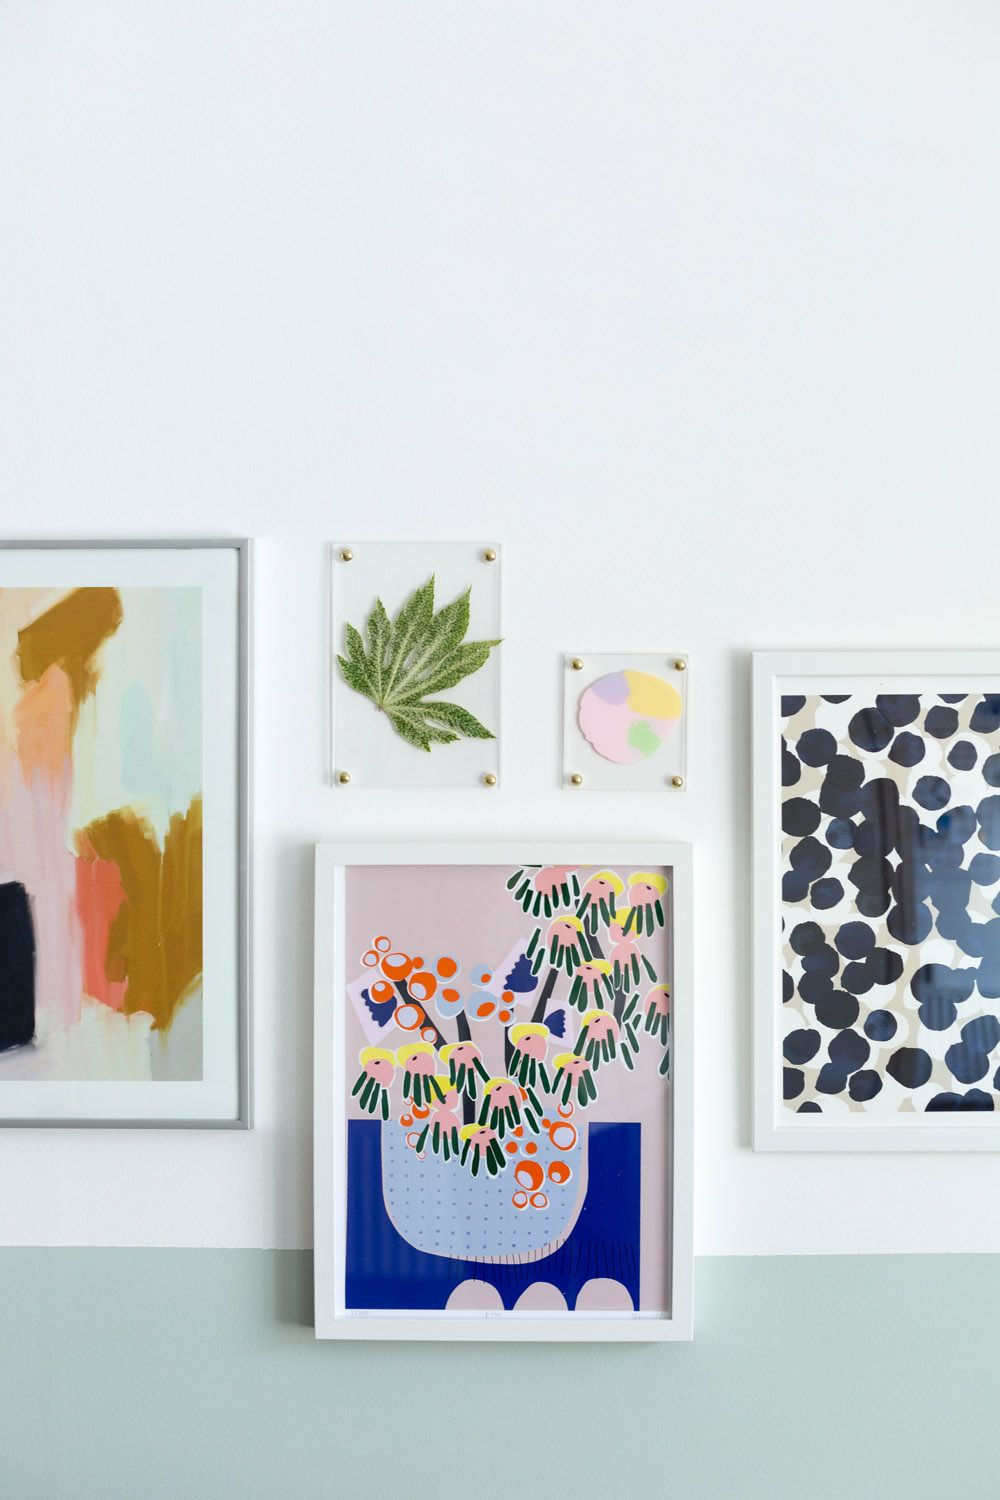 DIY No Drill Acrylic Picture Frames | Acrylic frames, Sugru and Diy ...